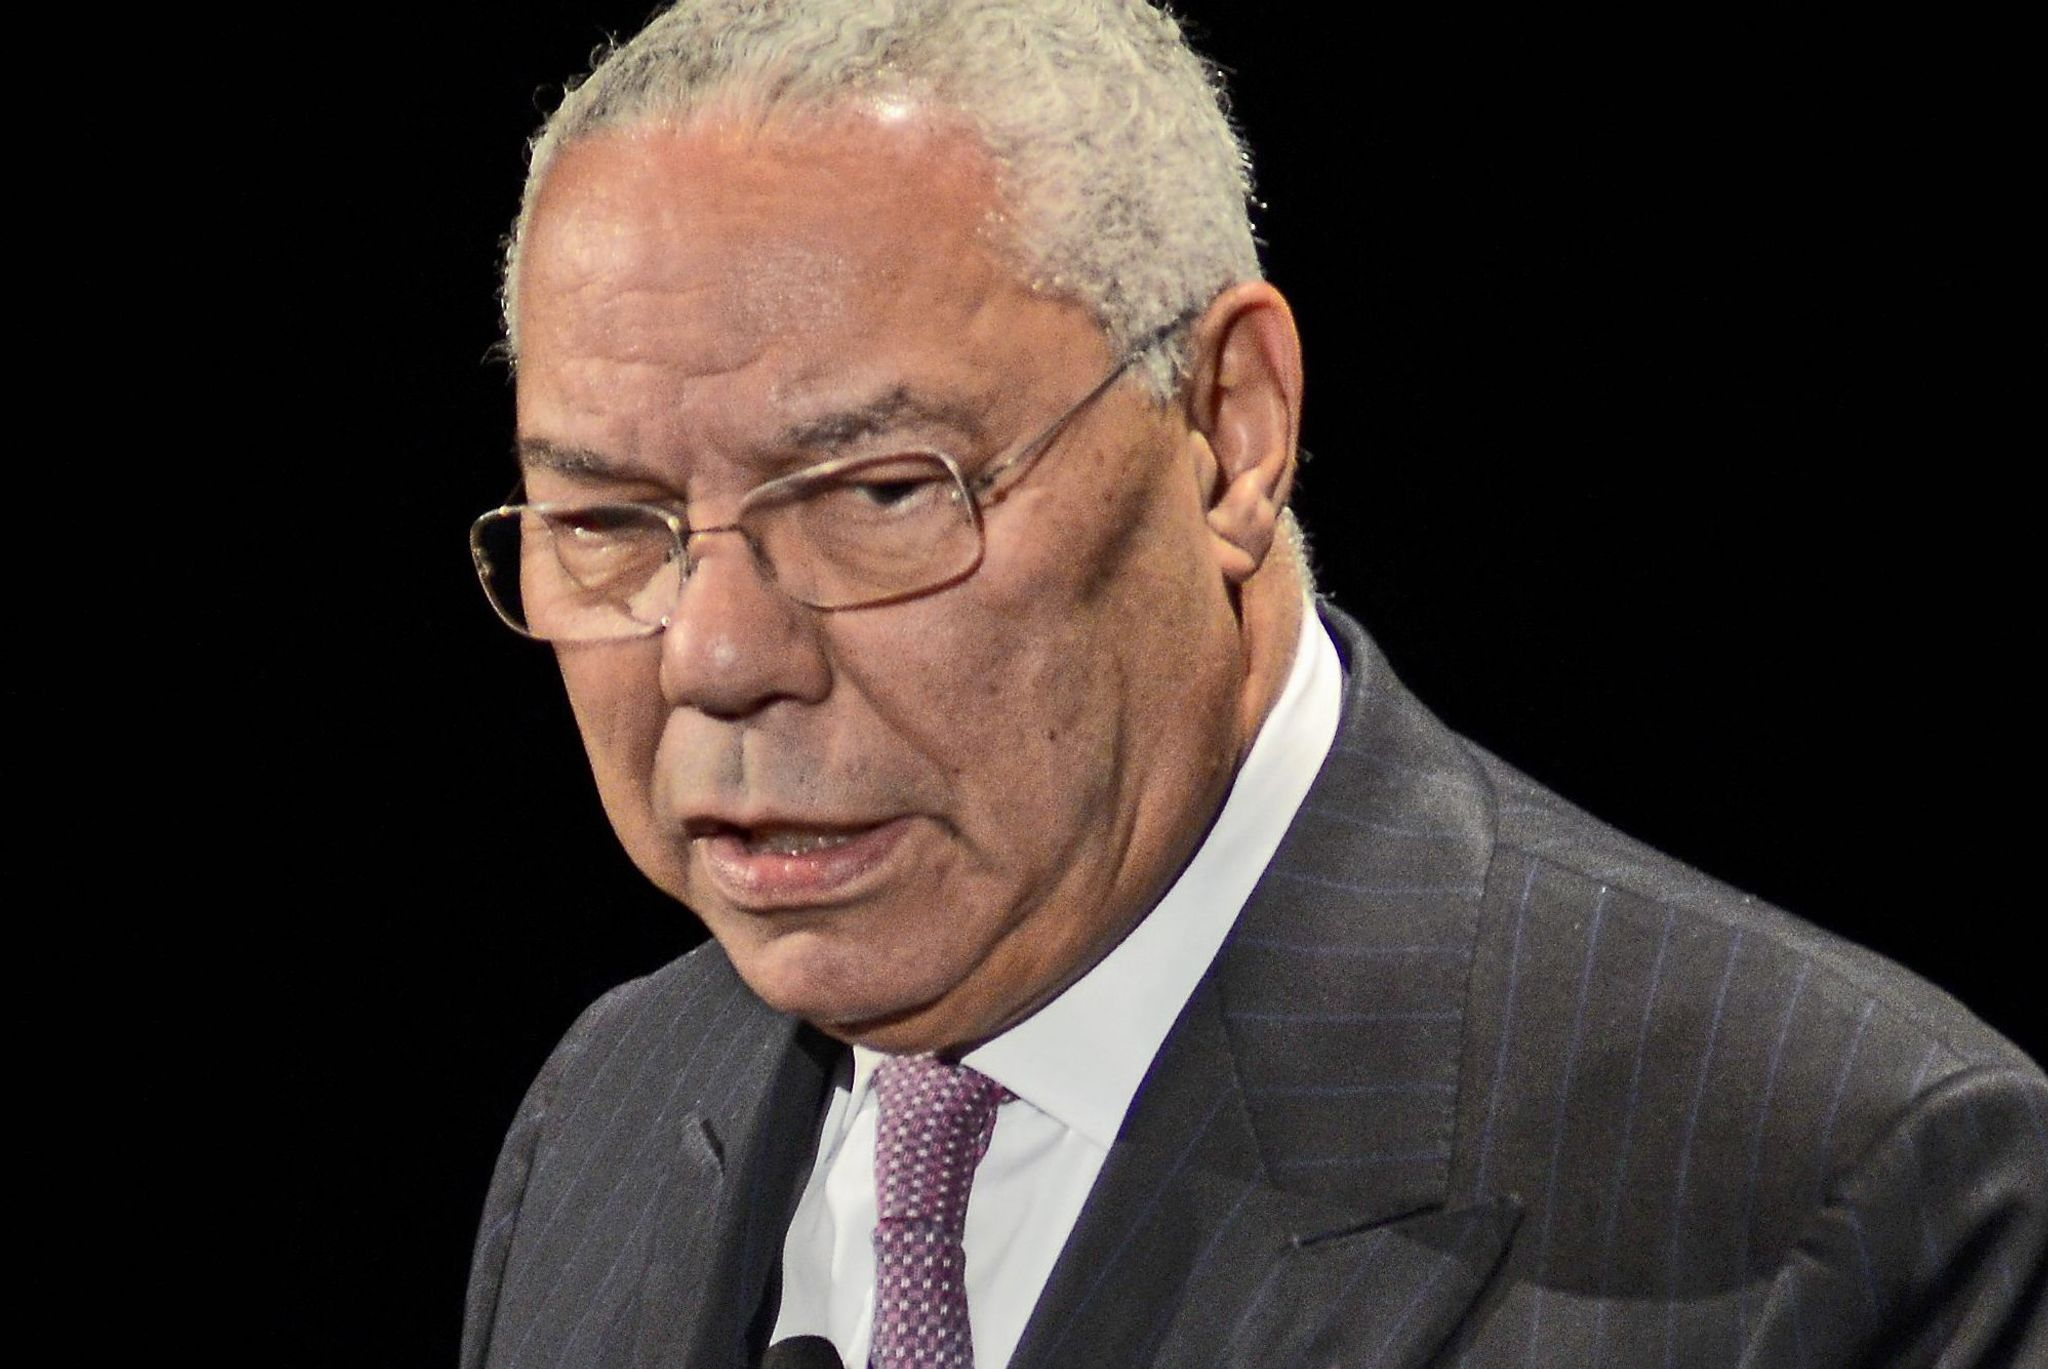 Colin Powell slams GOP 'nastiness': Presidential race 'has gone into the mud'